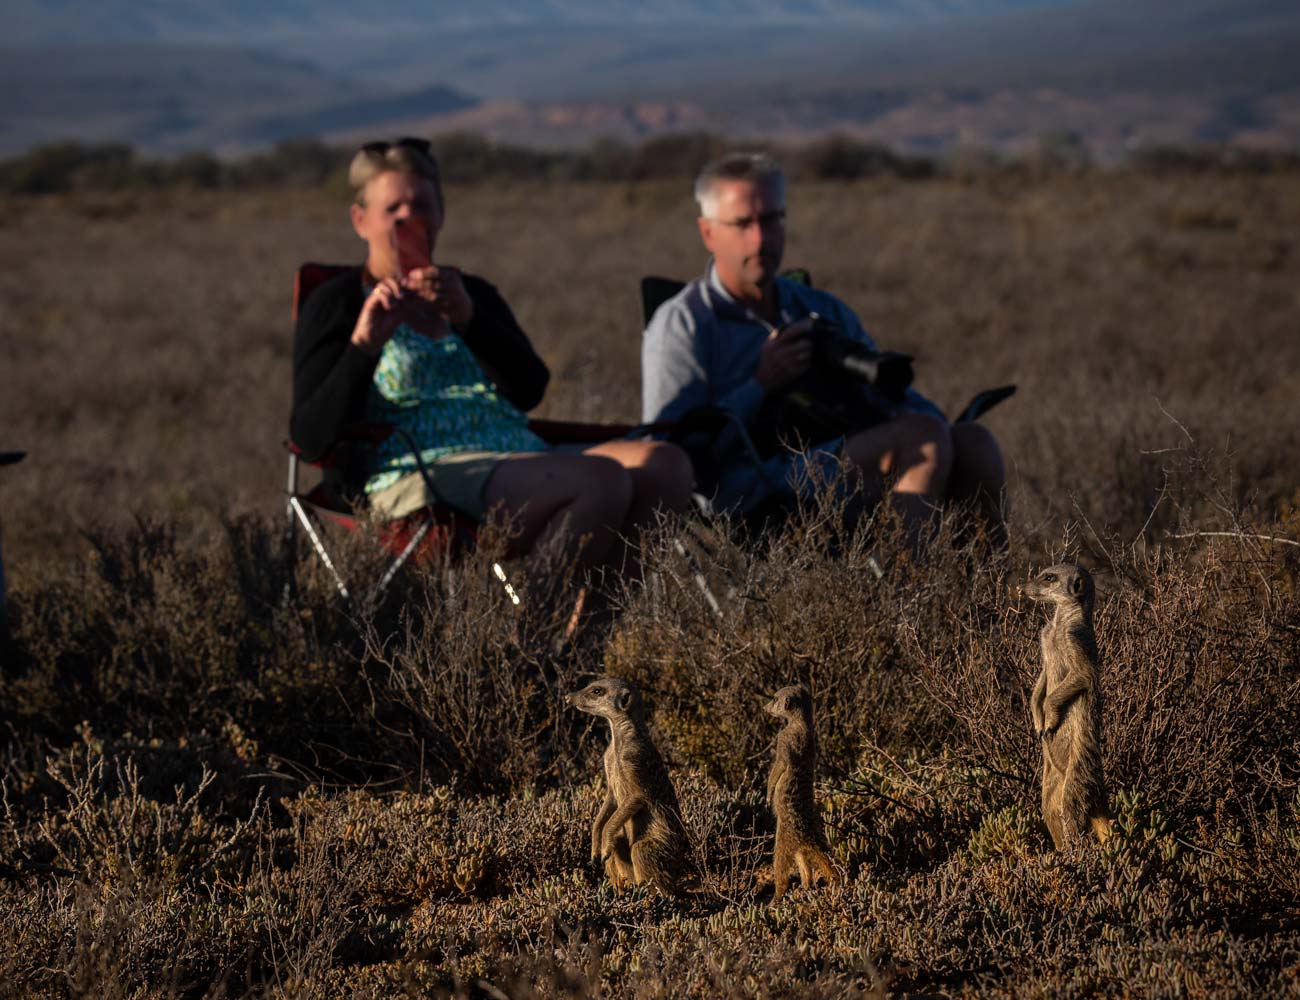 people sitting in chairs while meerkats get closer and curious